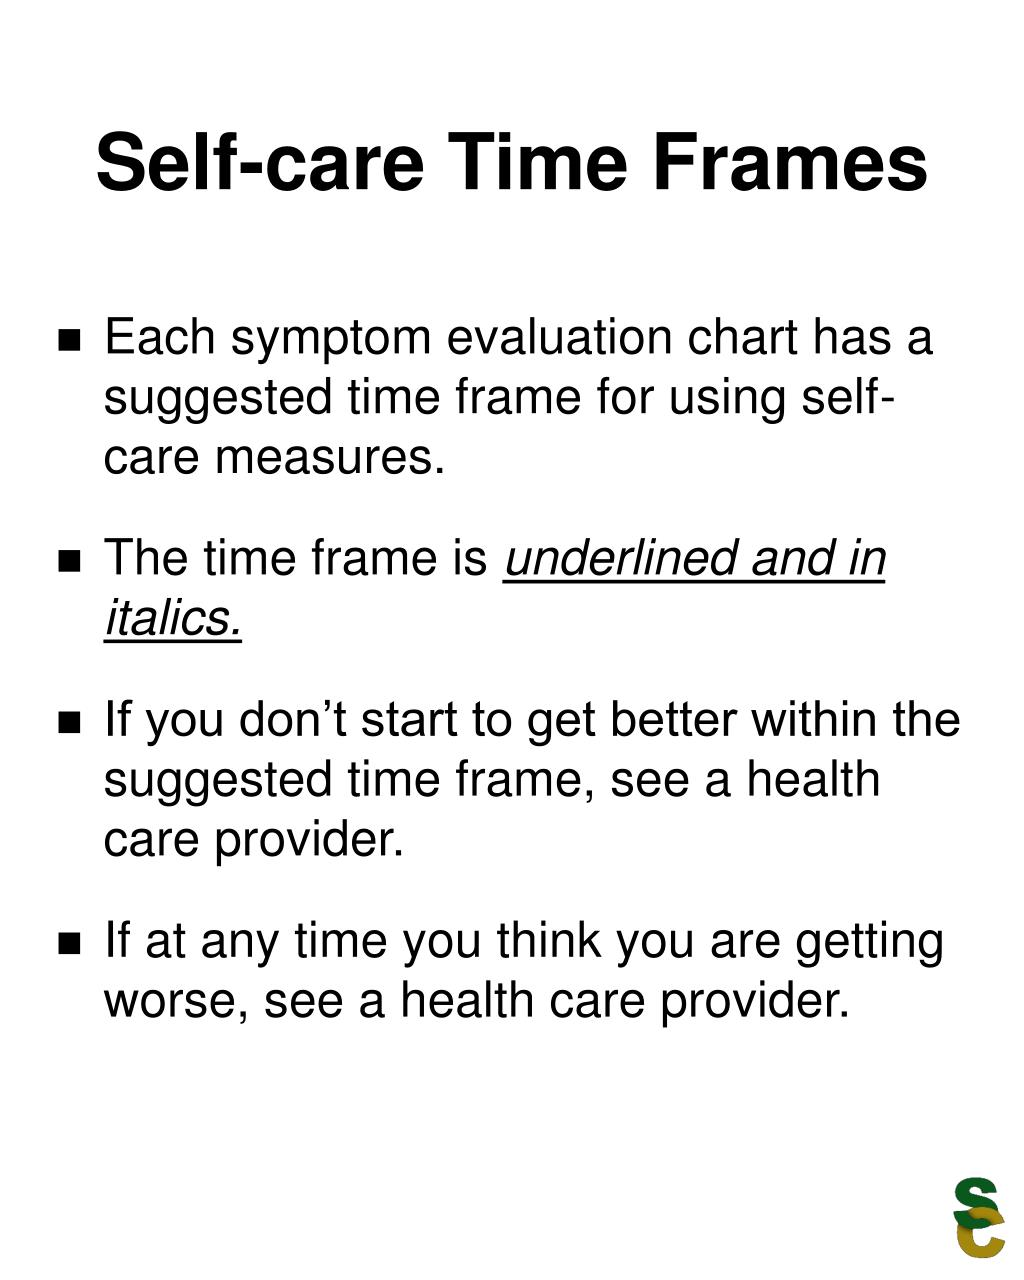 Self-care Time Frames